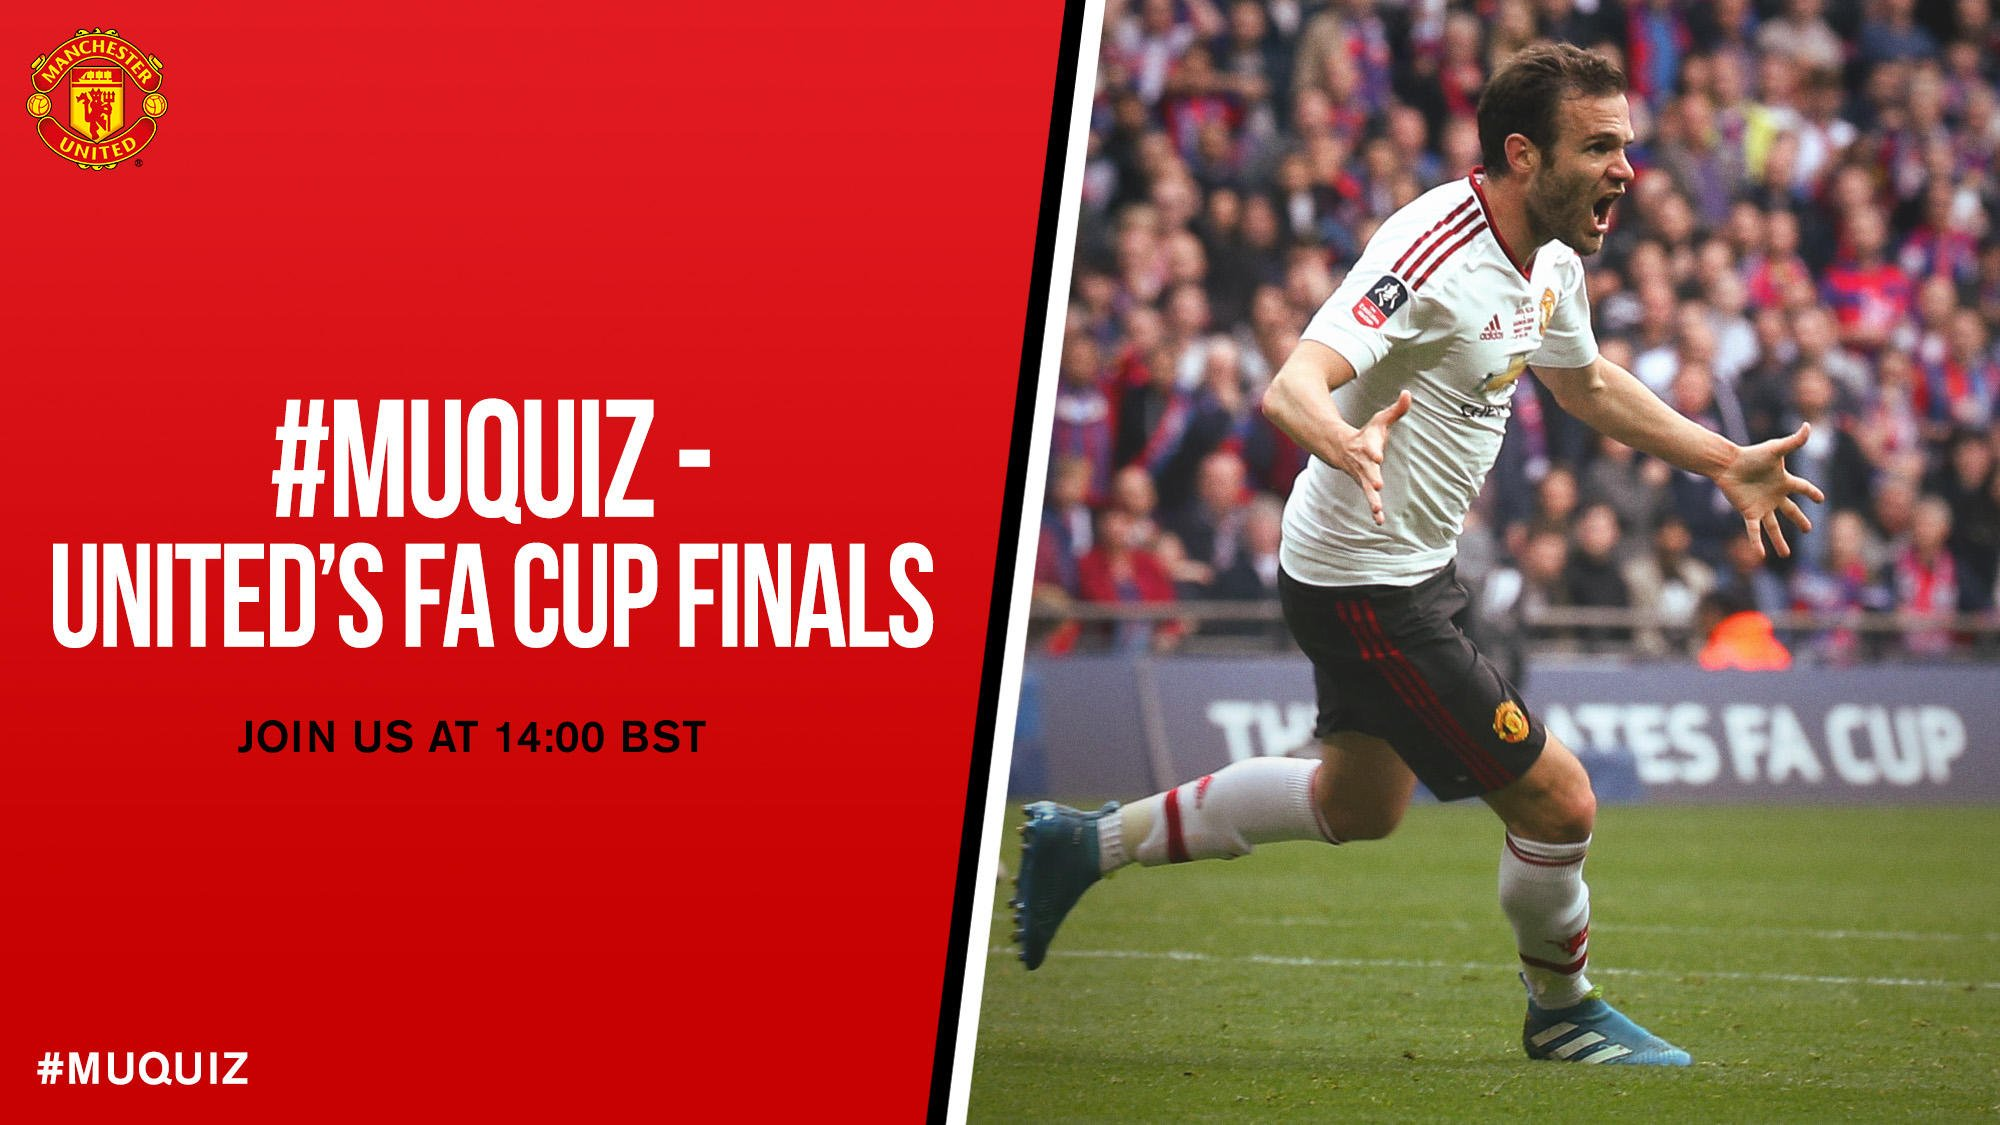 Our #MUquiz on #MUFC's past #FACup finals is coming up at 14:00 BST - don't miss it! https://t.co/5B8mGqBRm1